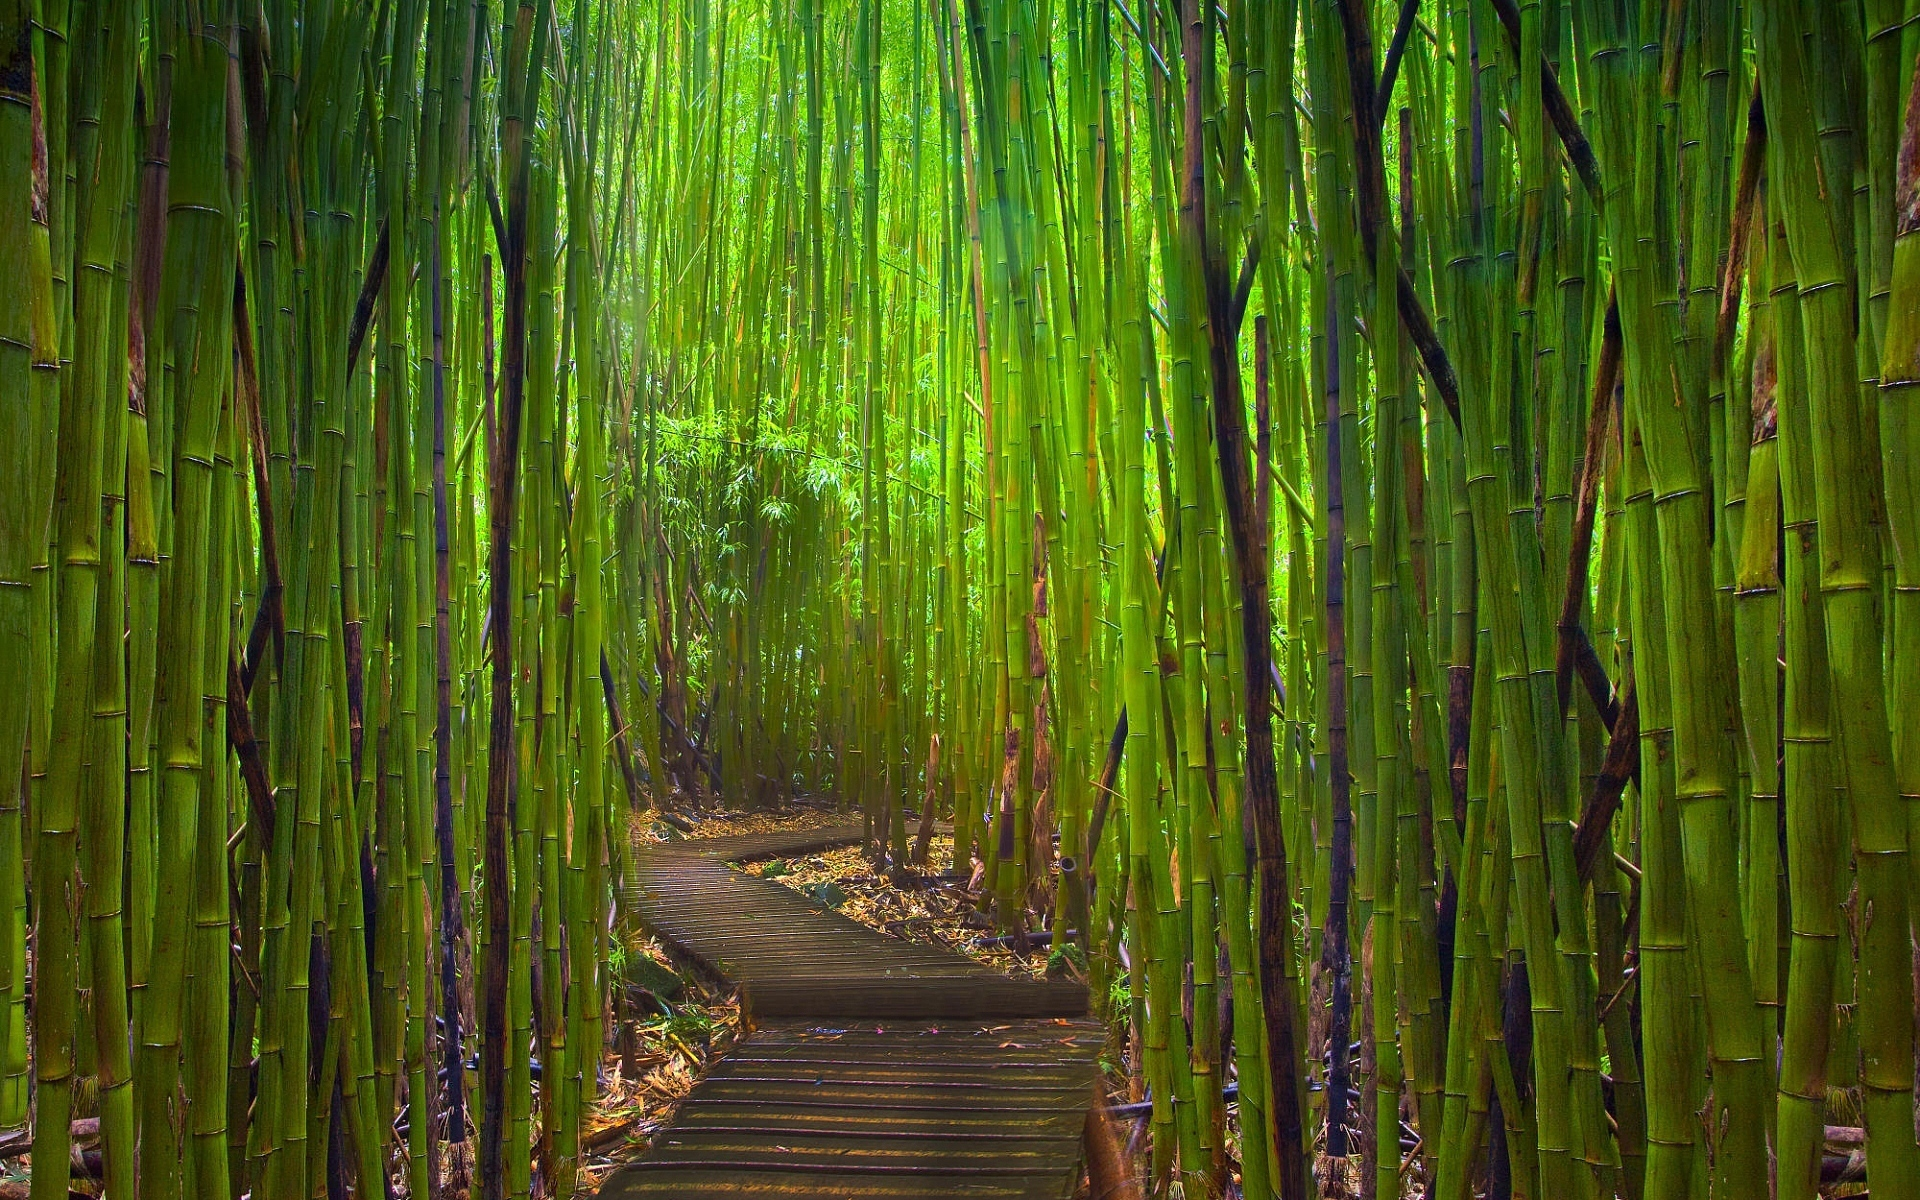 bamboo paths trail Asia HD Wallpaper